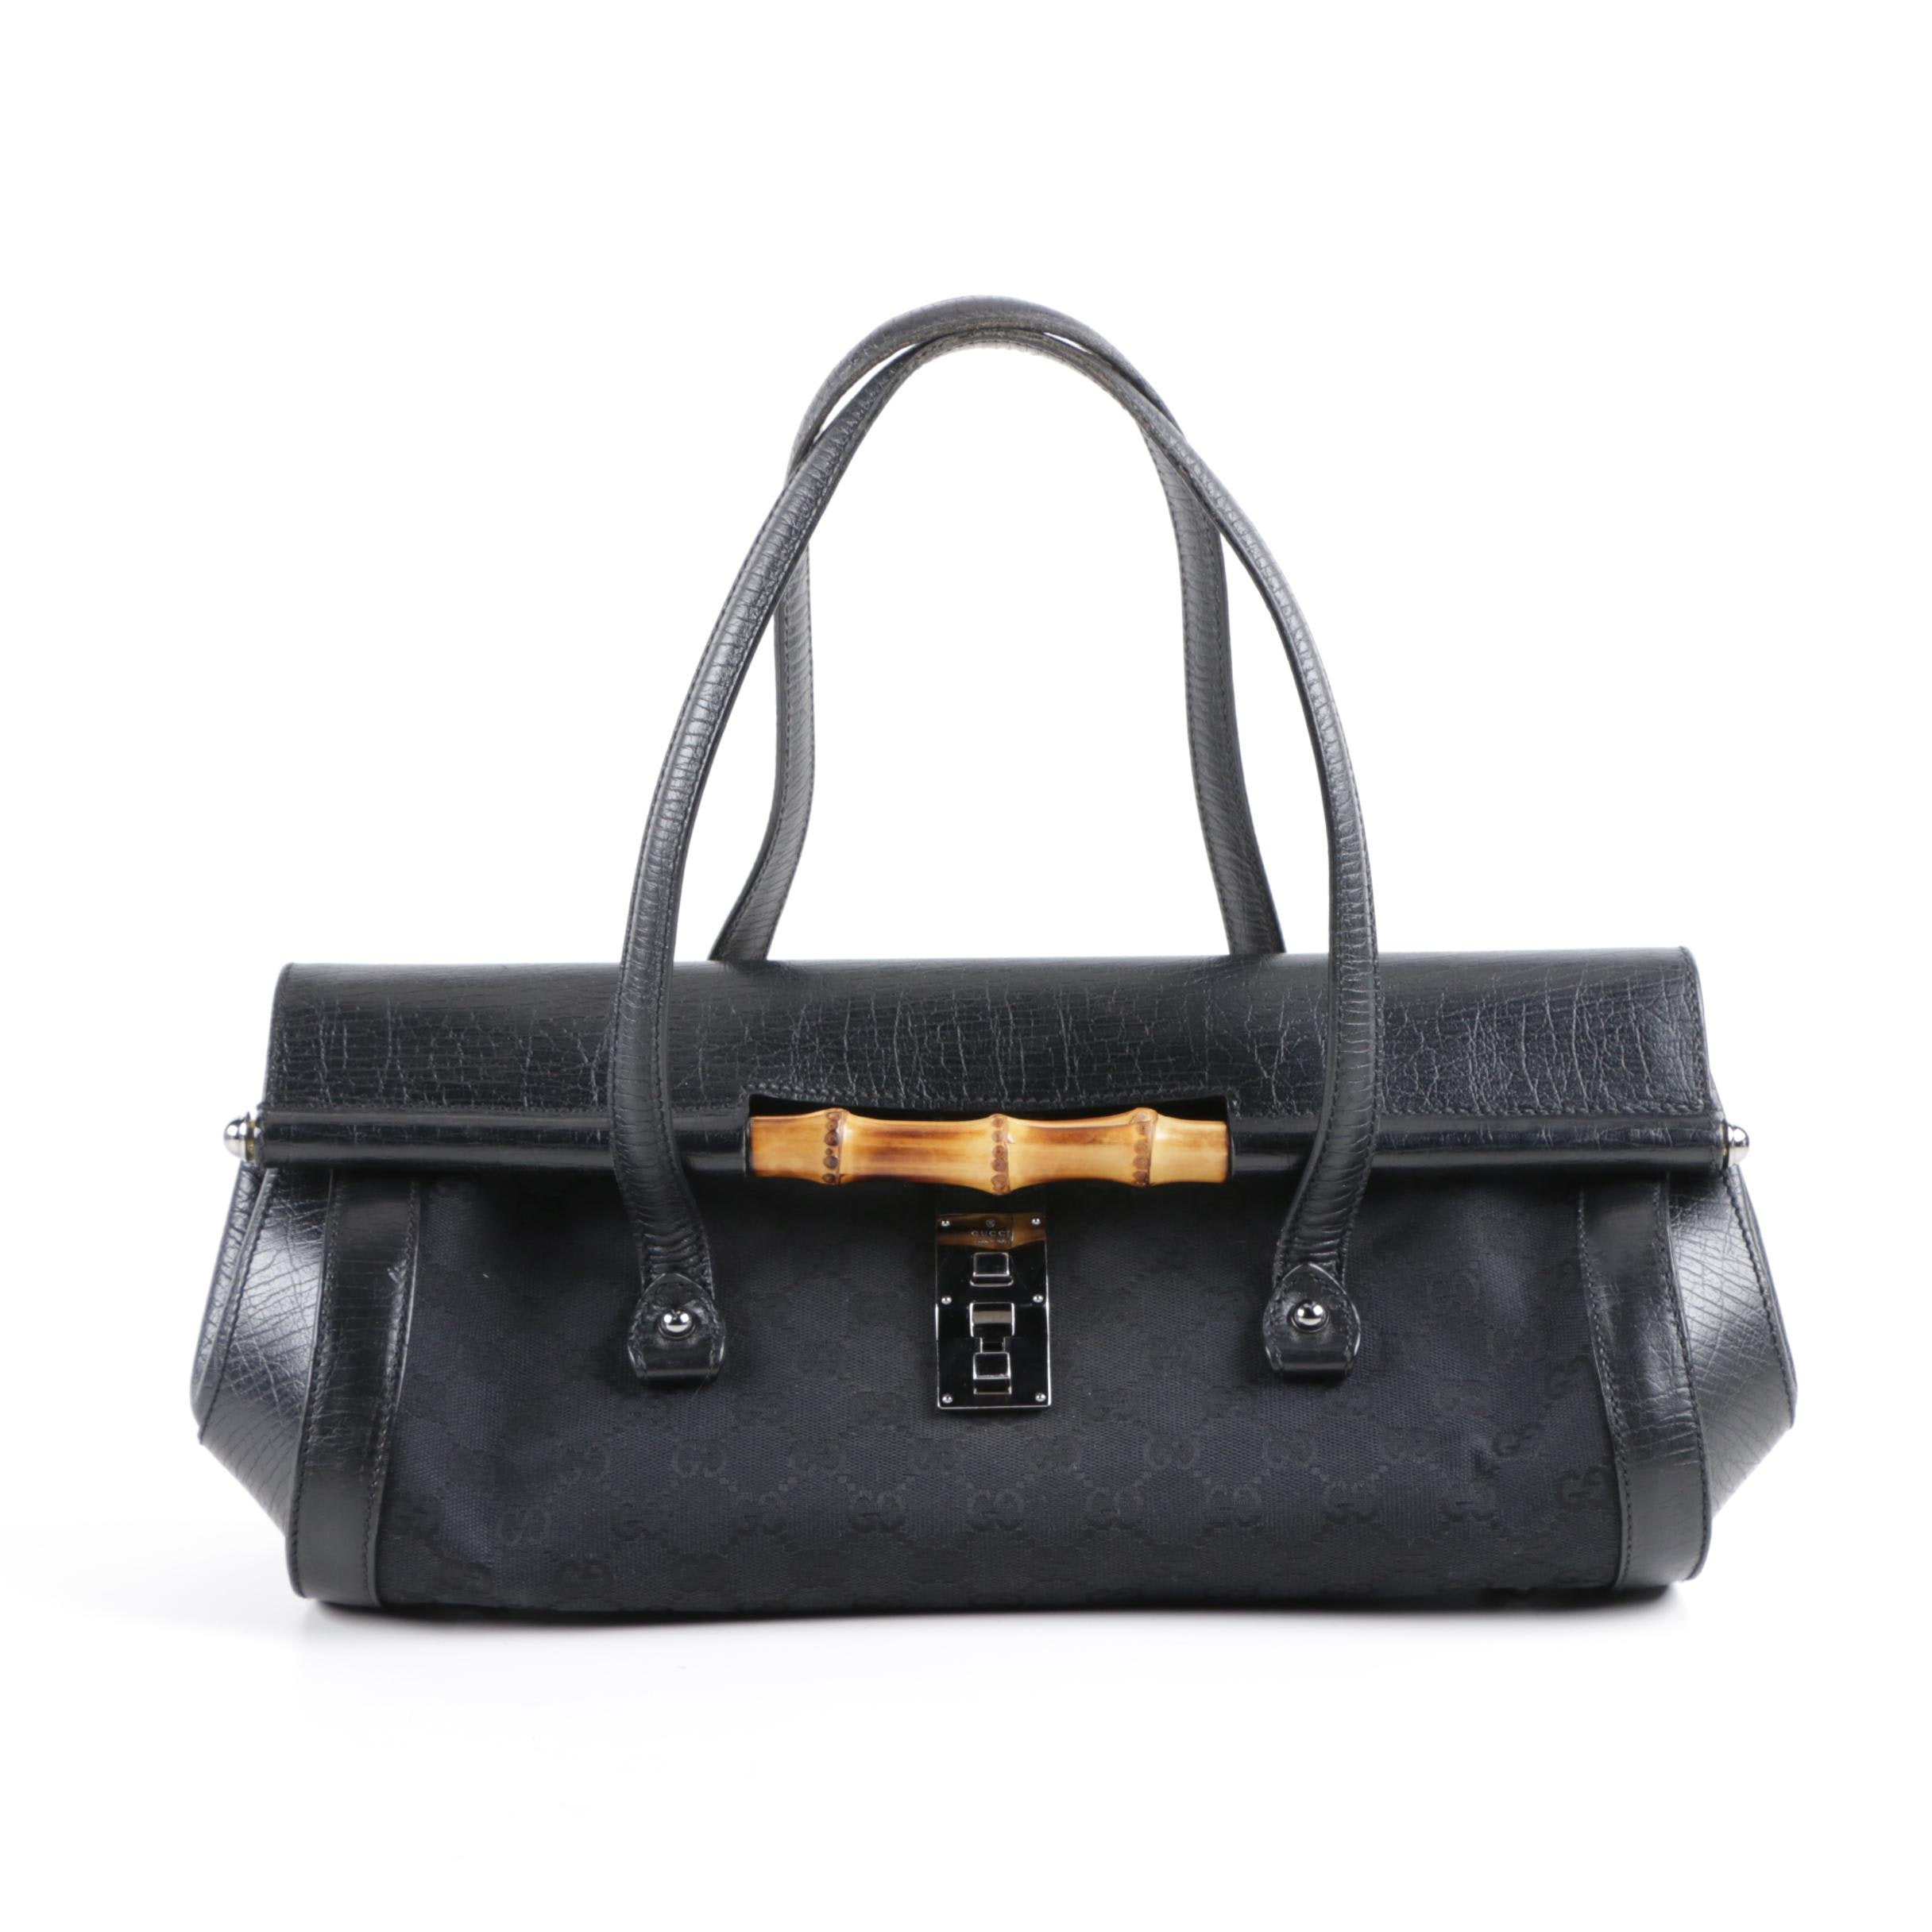 Gucci Bamboo Bullet Tote in Black Leather and Signature Canvas